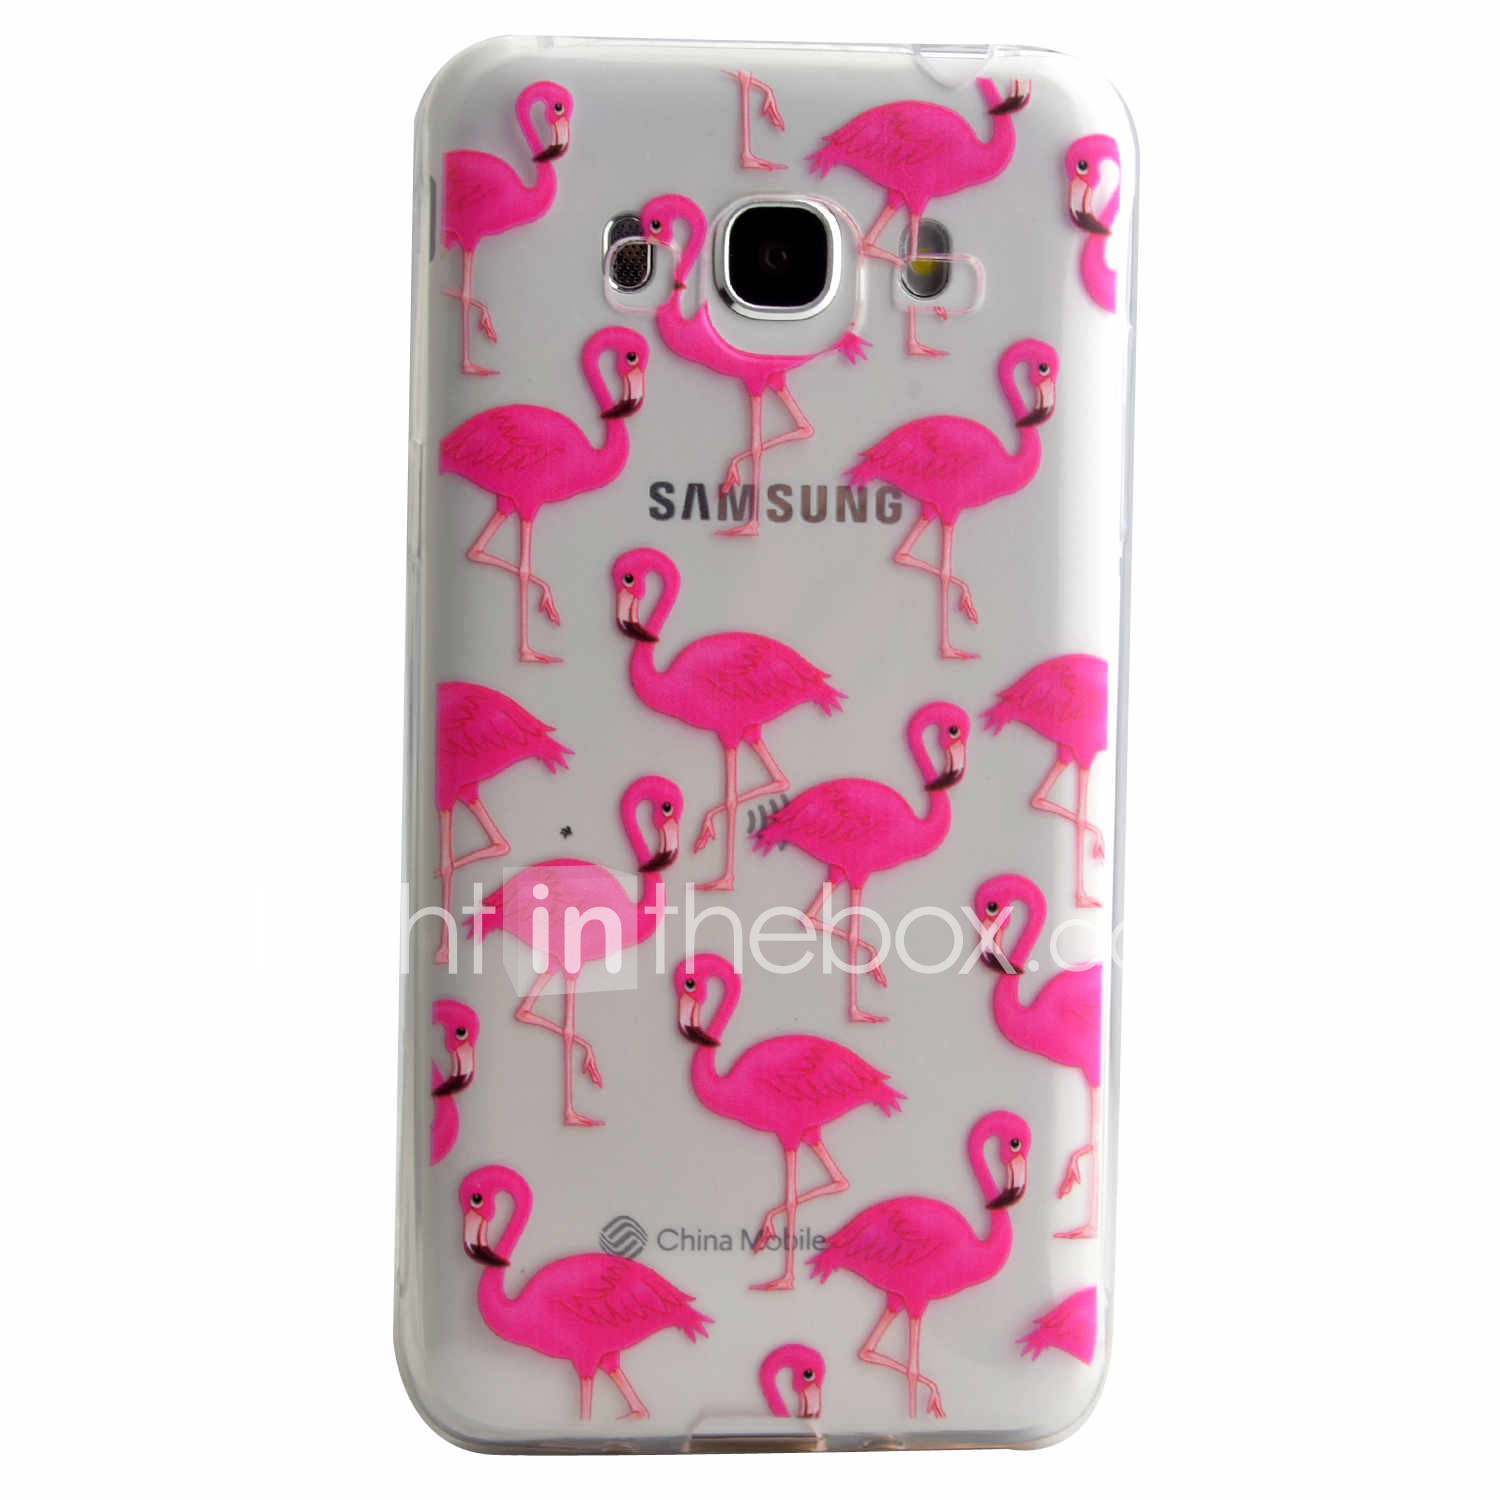 a28dd8e8f19 Case For Samsung Galaxy Samsung Galaxy Case Pattern Back Cover Animal Soft TPU  for J5 (2016) / J5 / J3 (2016) #05260879